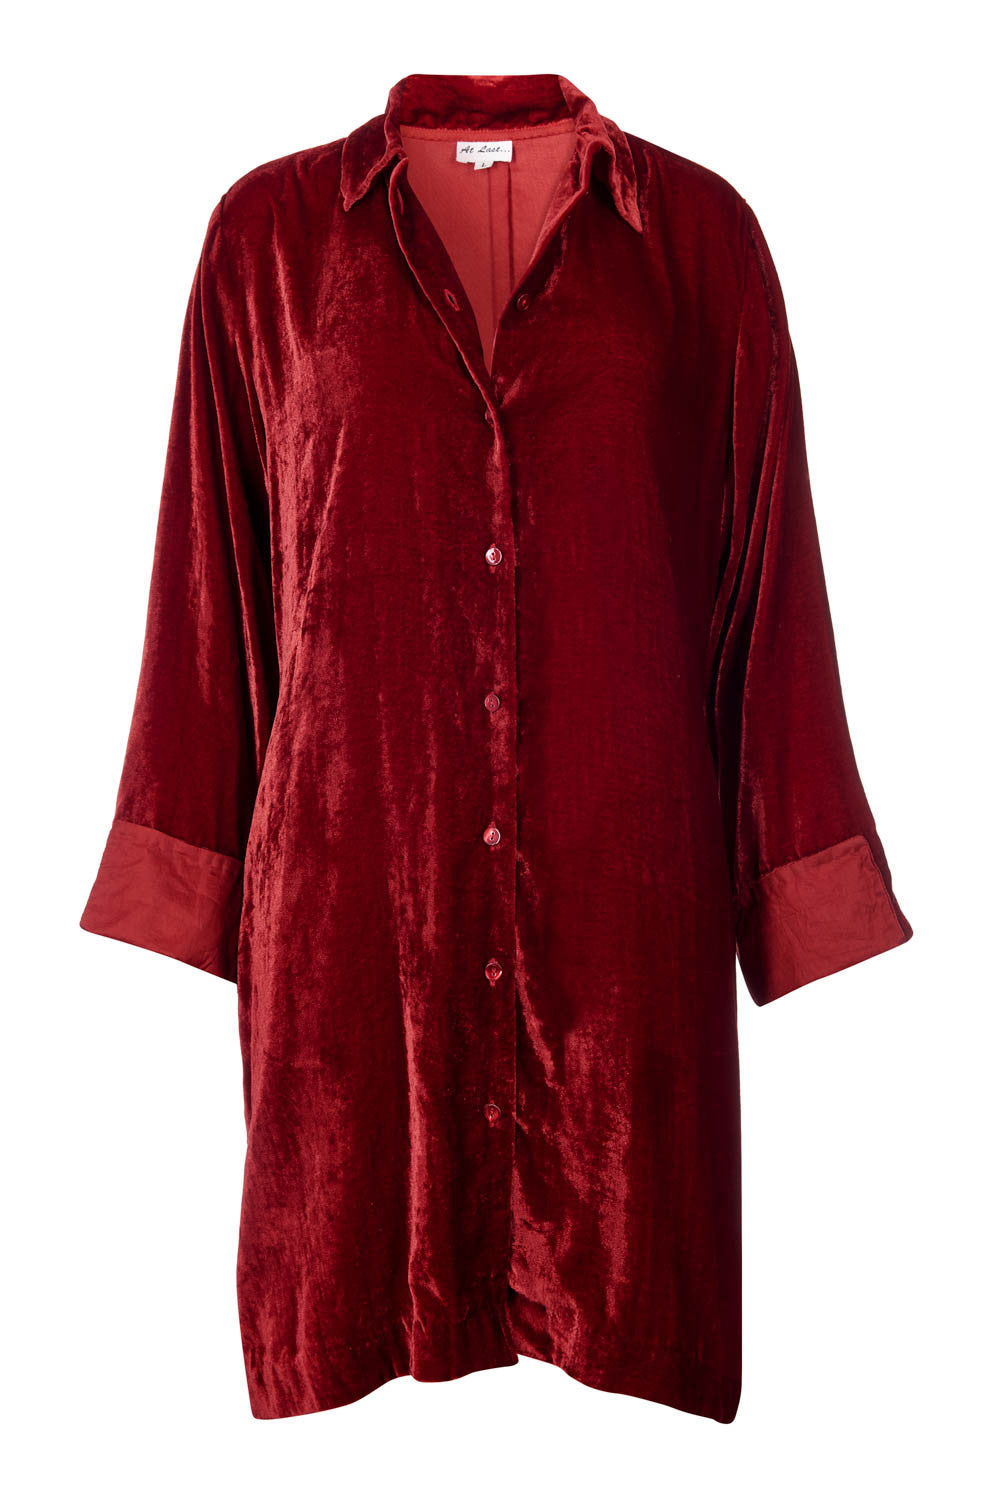 Amanda Silk Velvet Shirt (straight hem) - Red